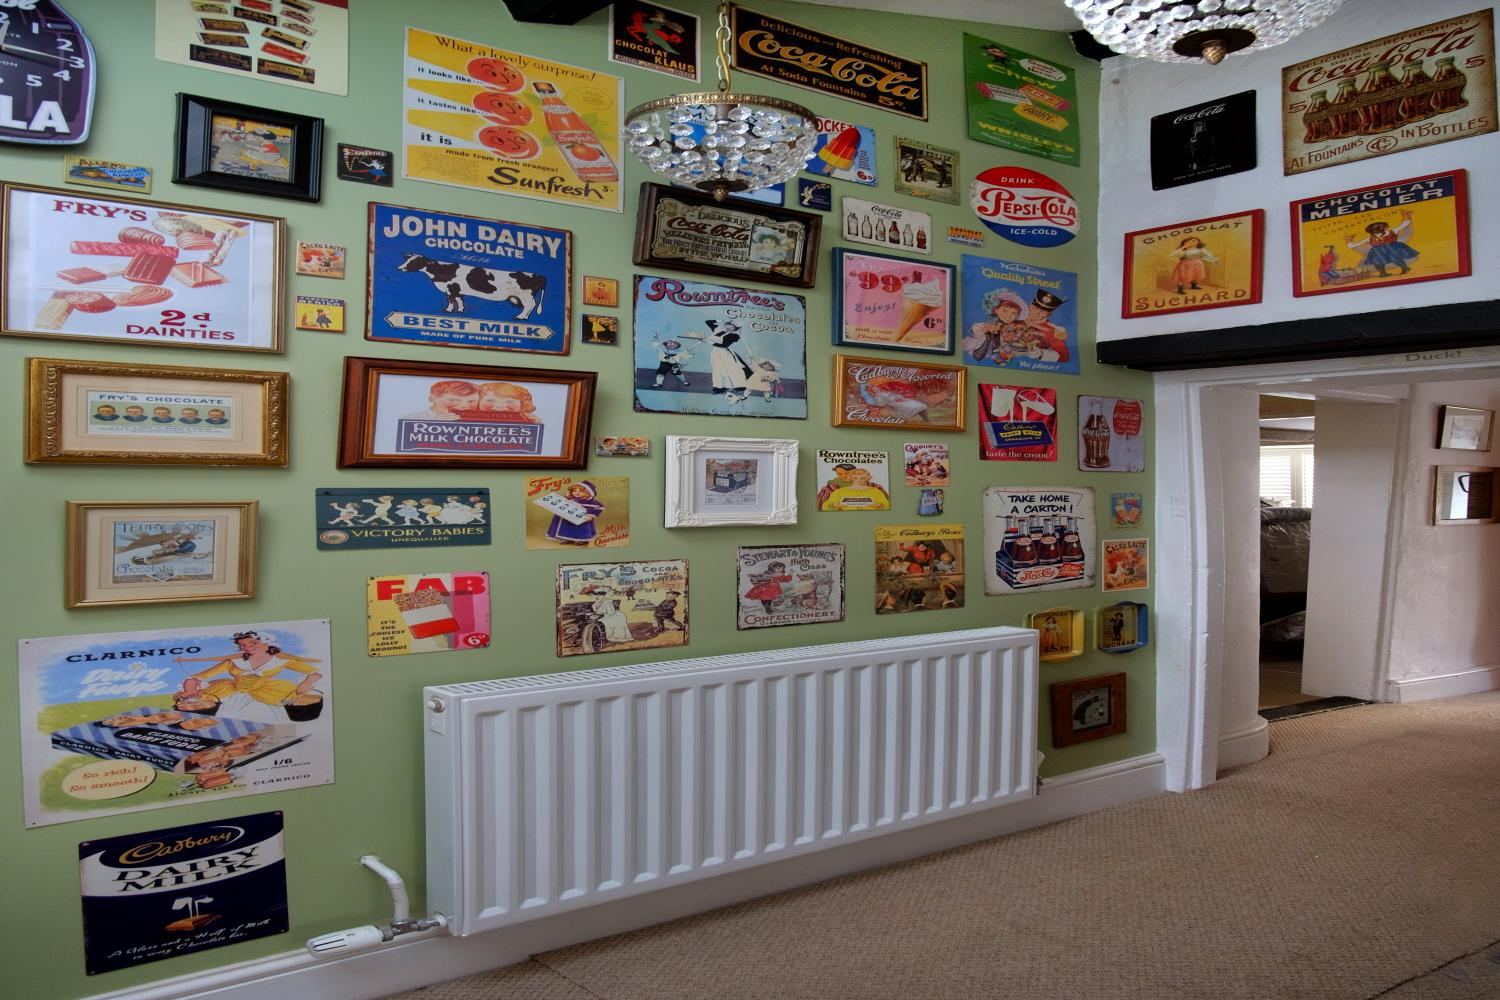 Our 'brand' wall with old confectionery adverts